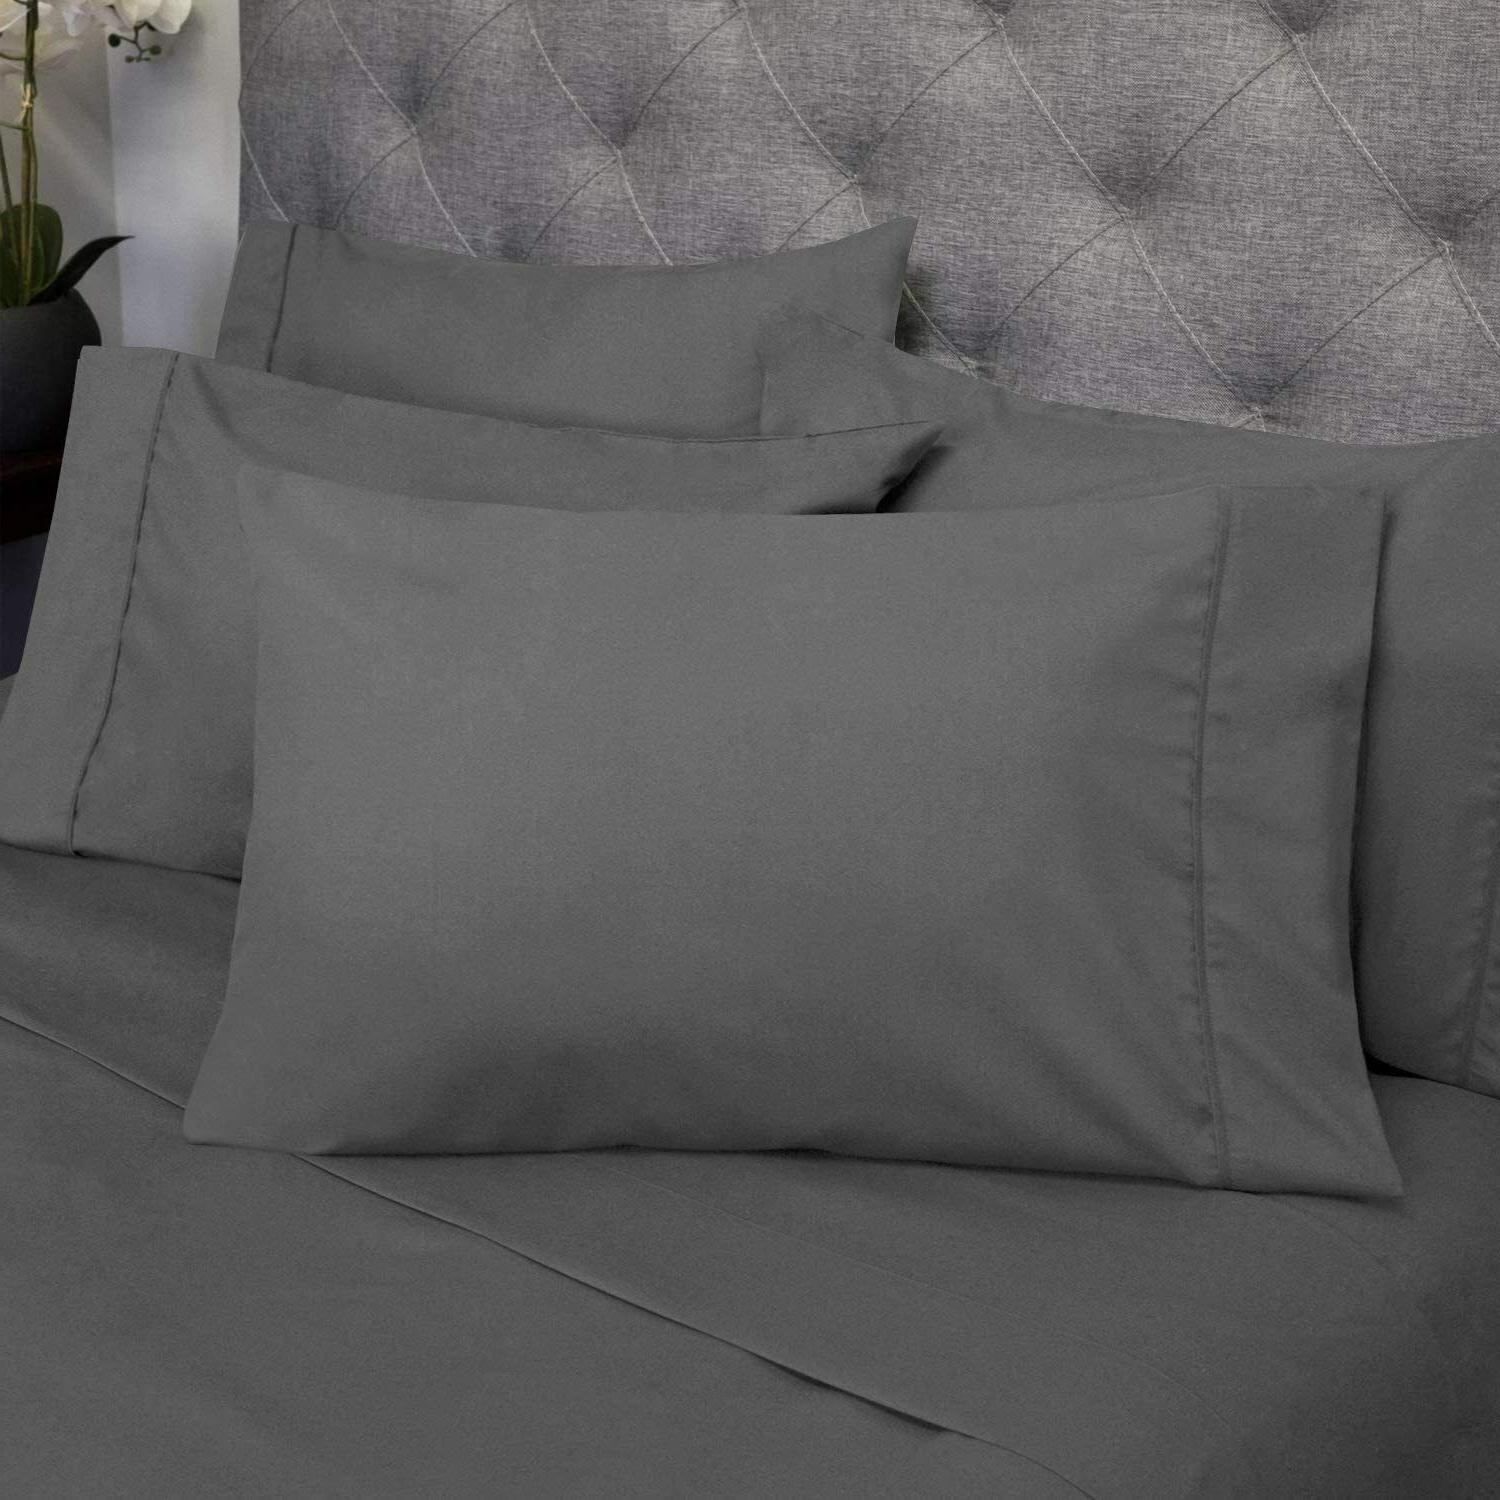 100 EGYPTIAN COTTON BED SHEET SIZES 1500 THREAD SHEETS GREY